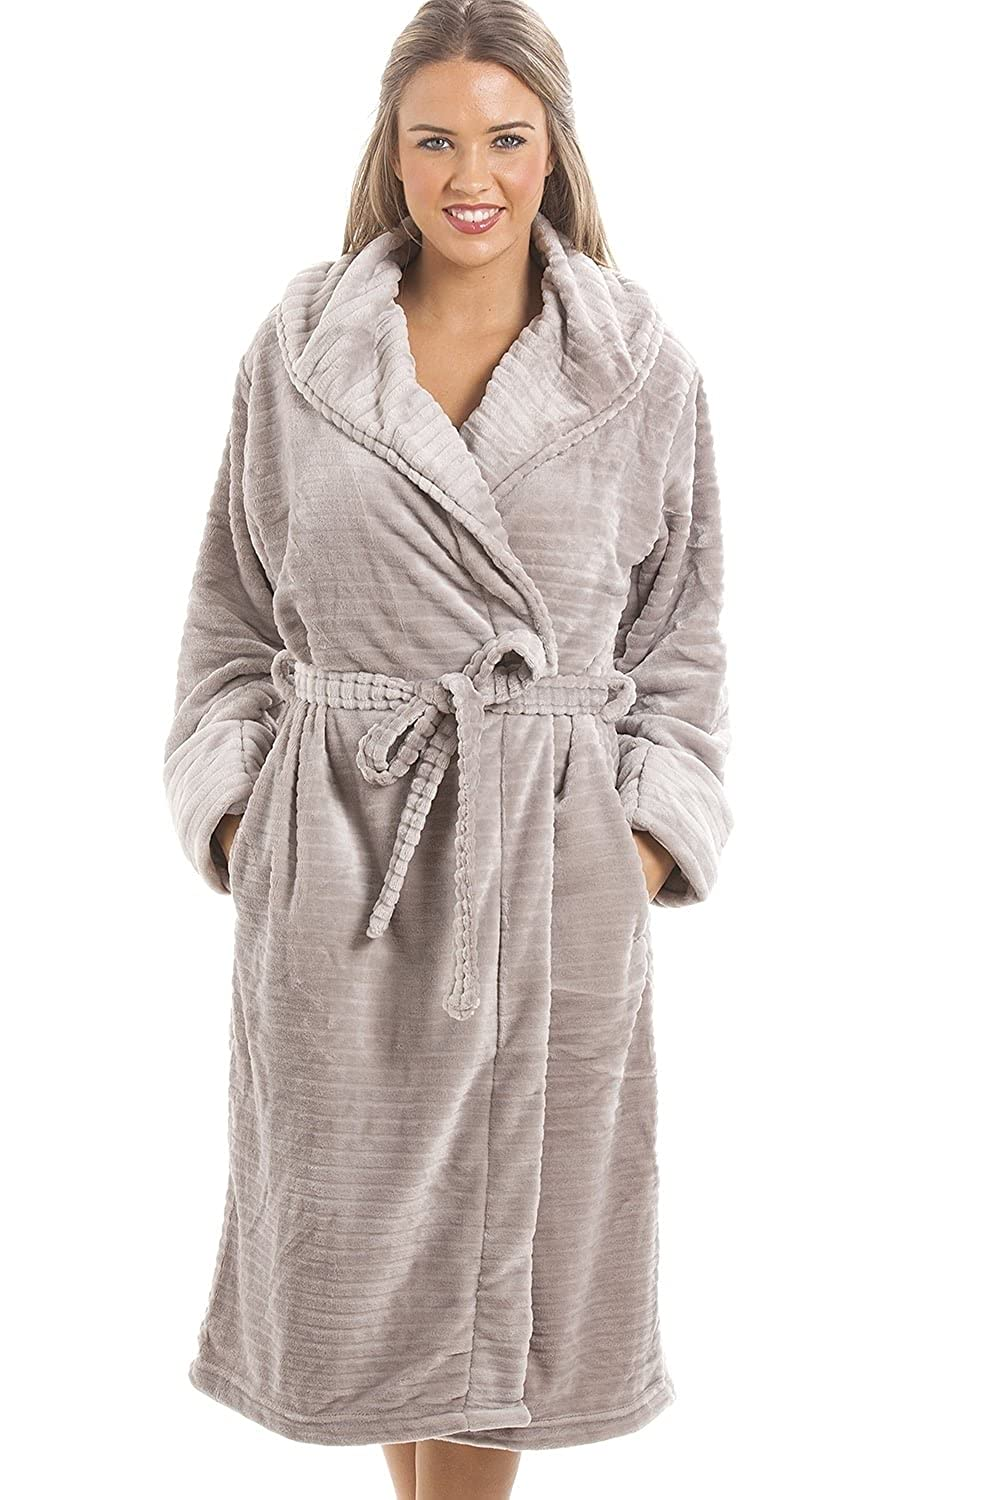 635b4a98019 Camille Womens Ladies Super Soft Fleece Gray Dressing Gown at Amazon  Women s Clothing store